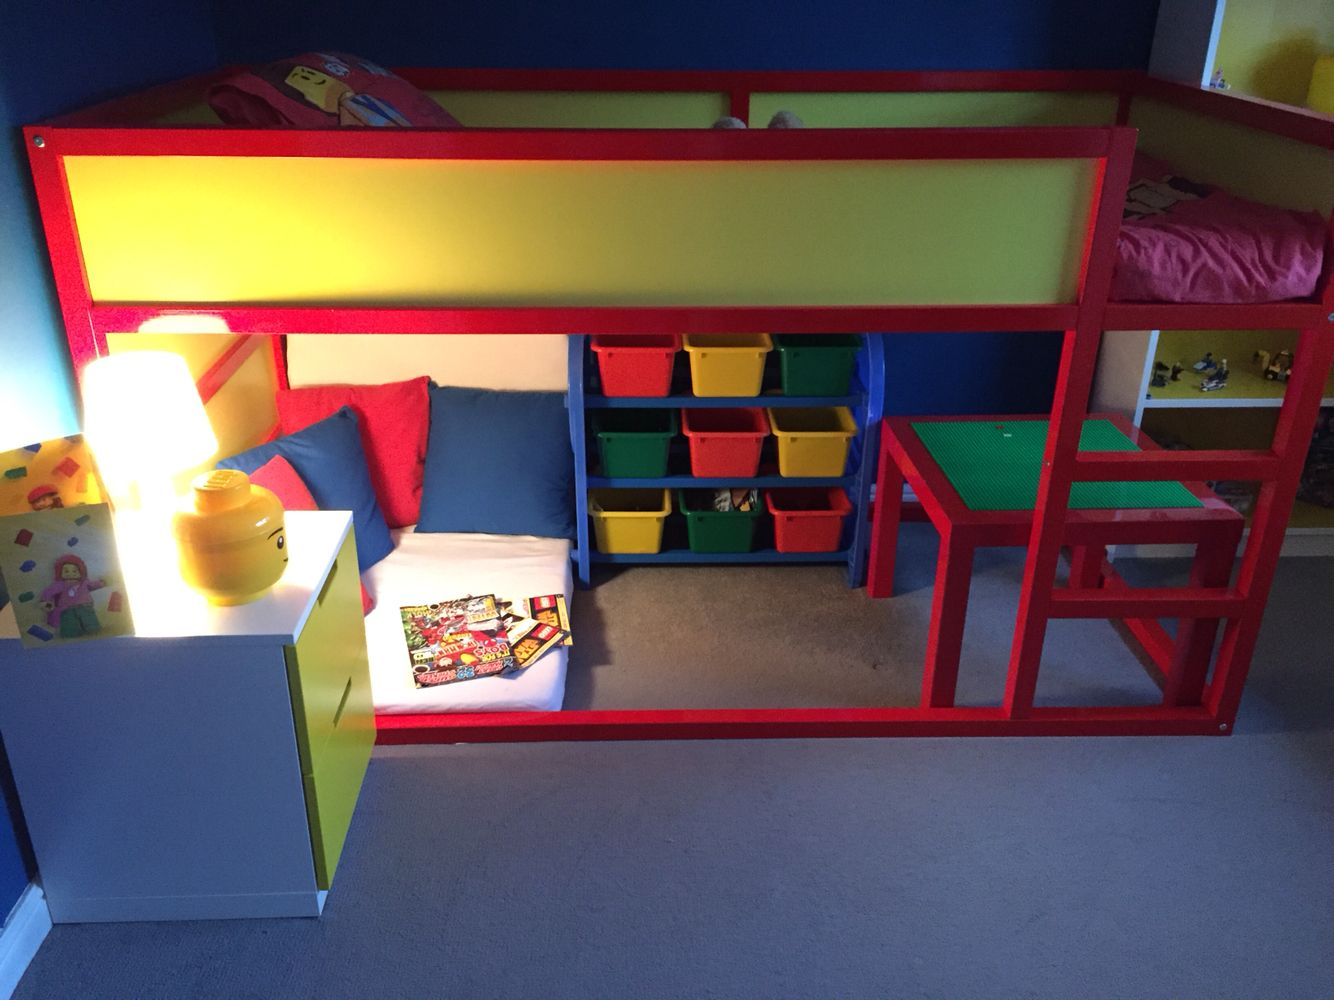 Lego Bedroom Completed Ikea Kura Bed Hack Milo 39 S Room